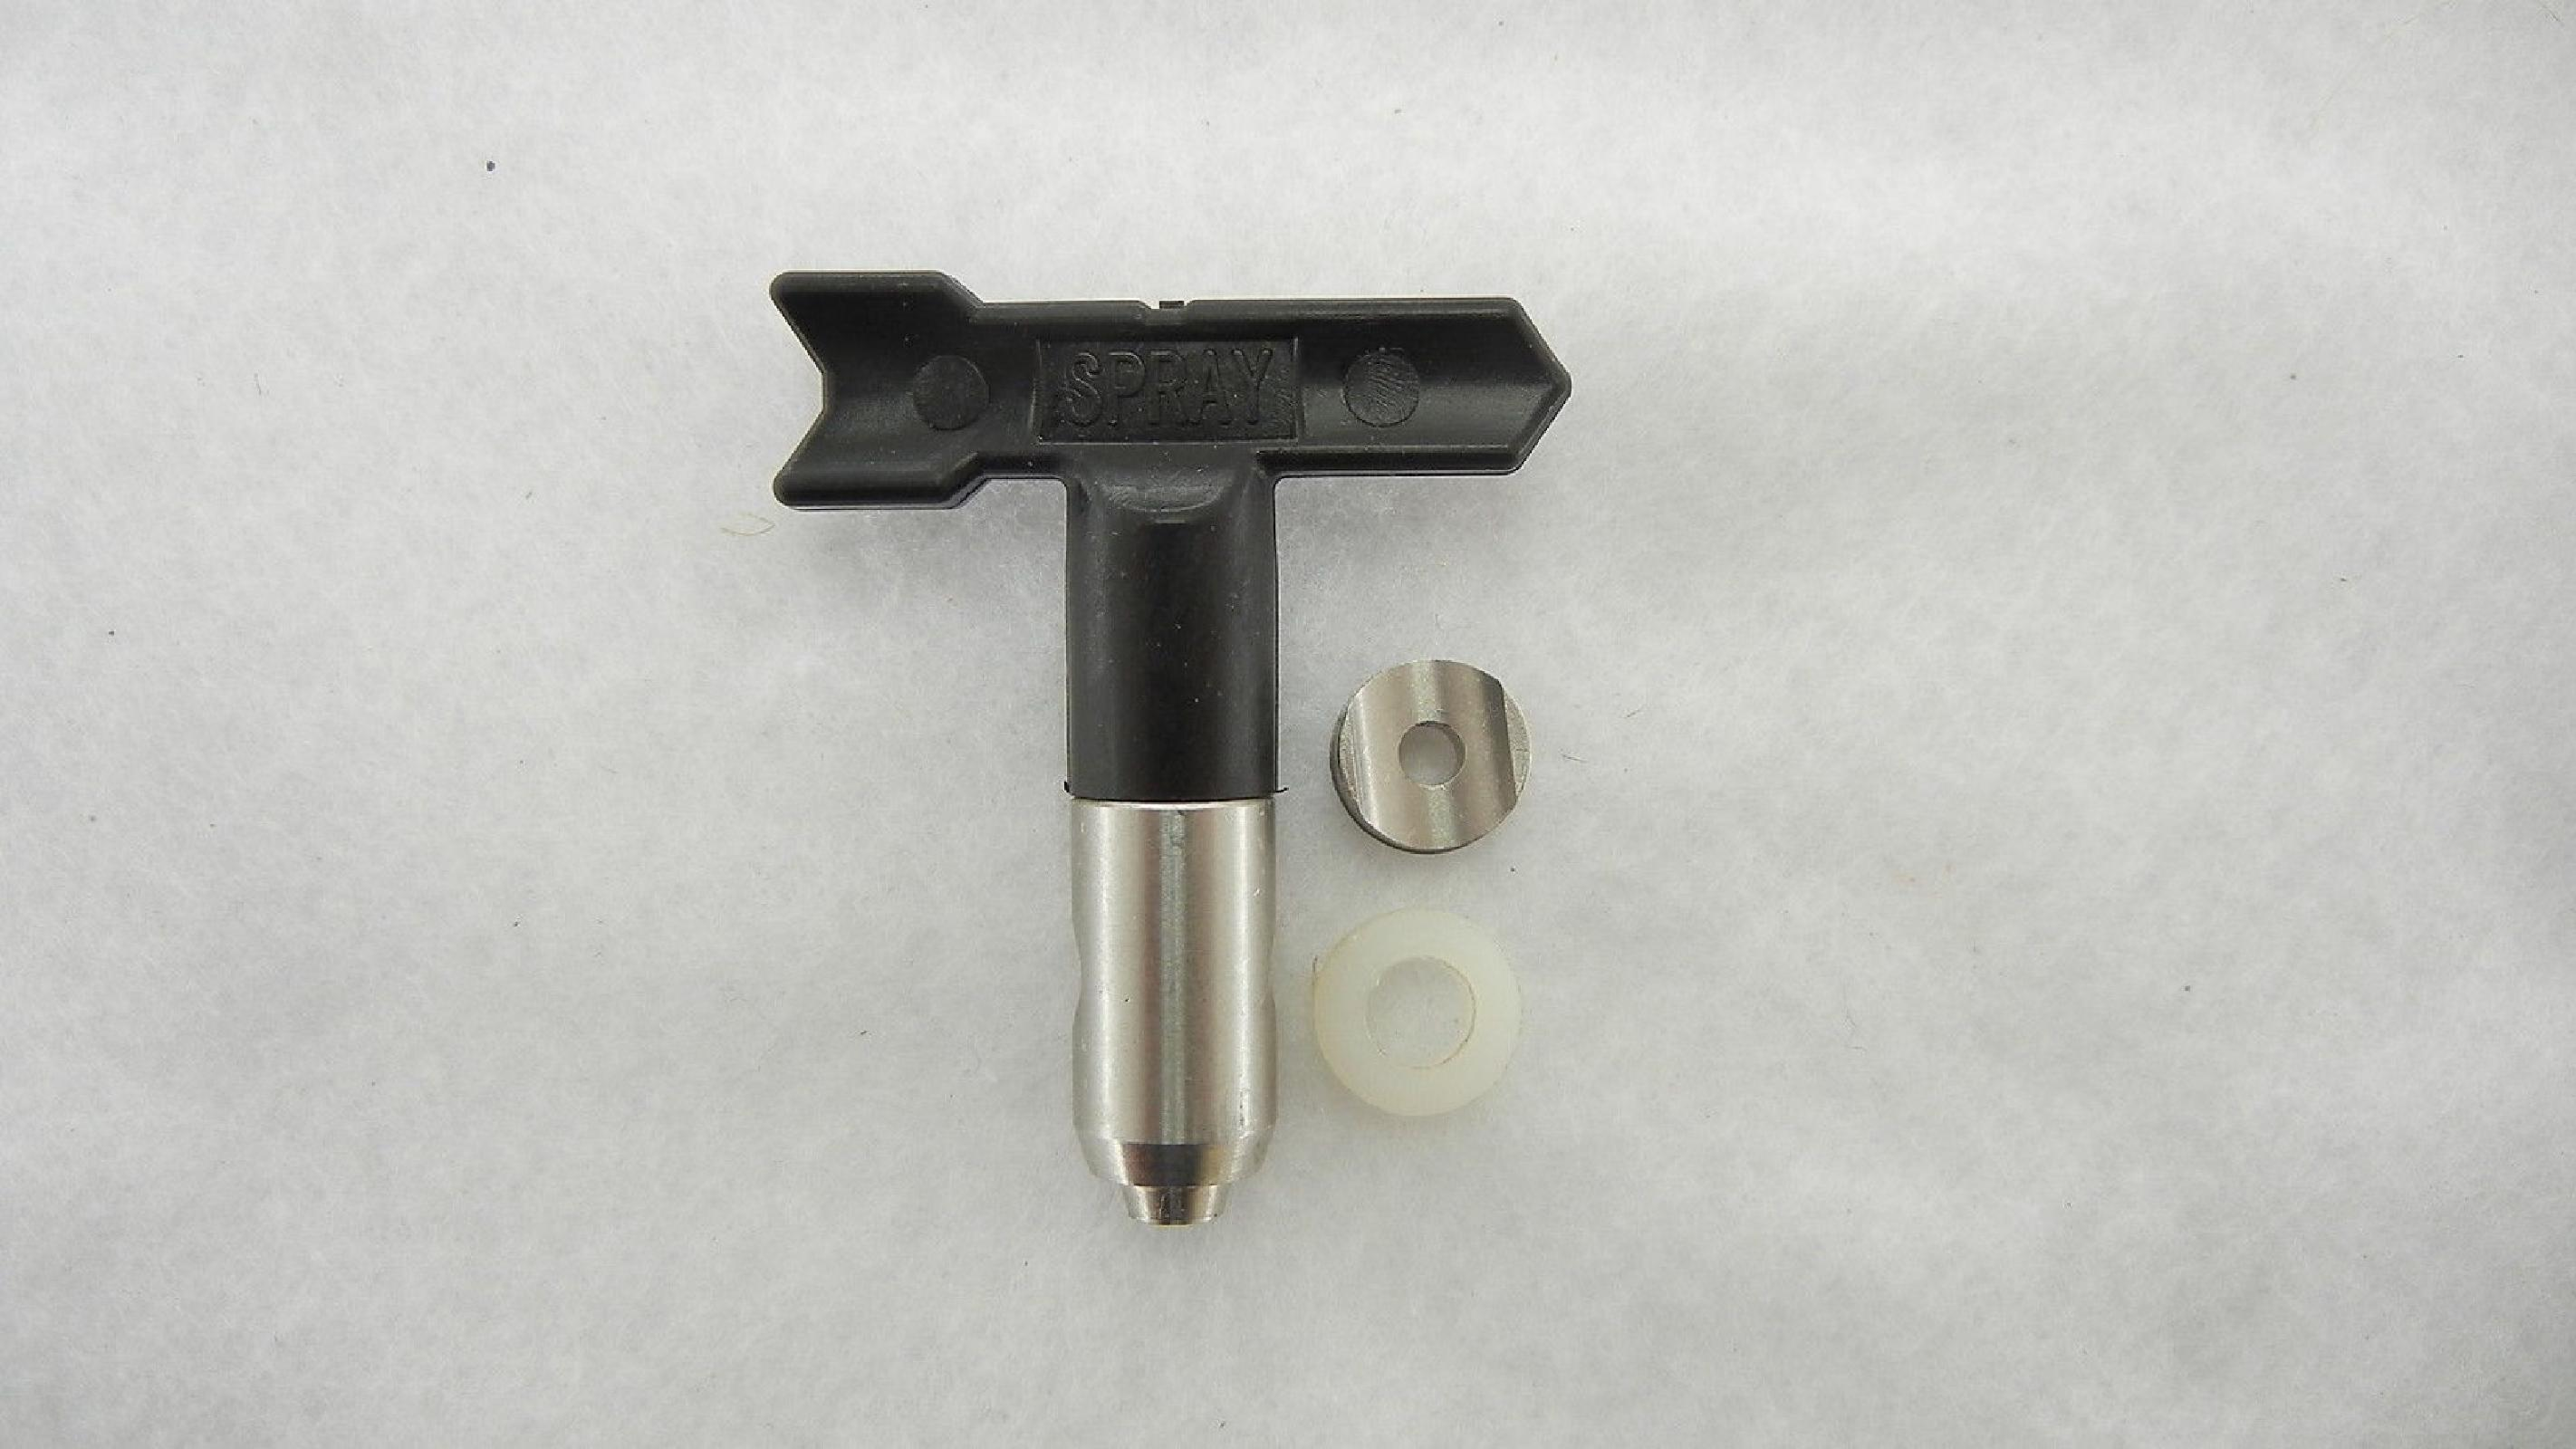 Replacement Graco Rac 5 Switch Tip / Reversible Tip Size 209